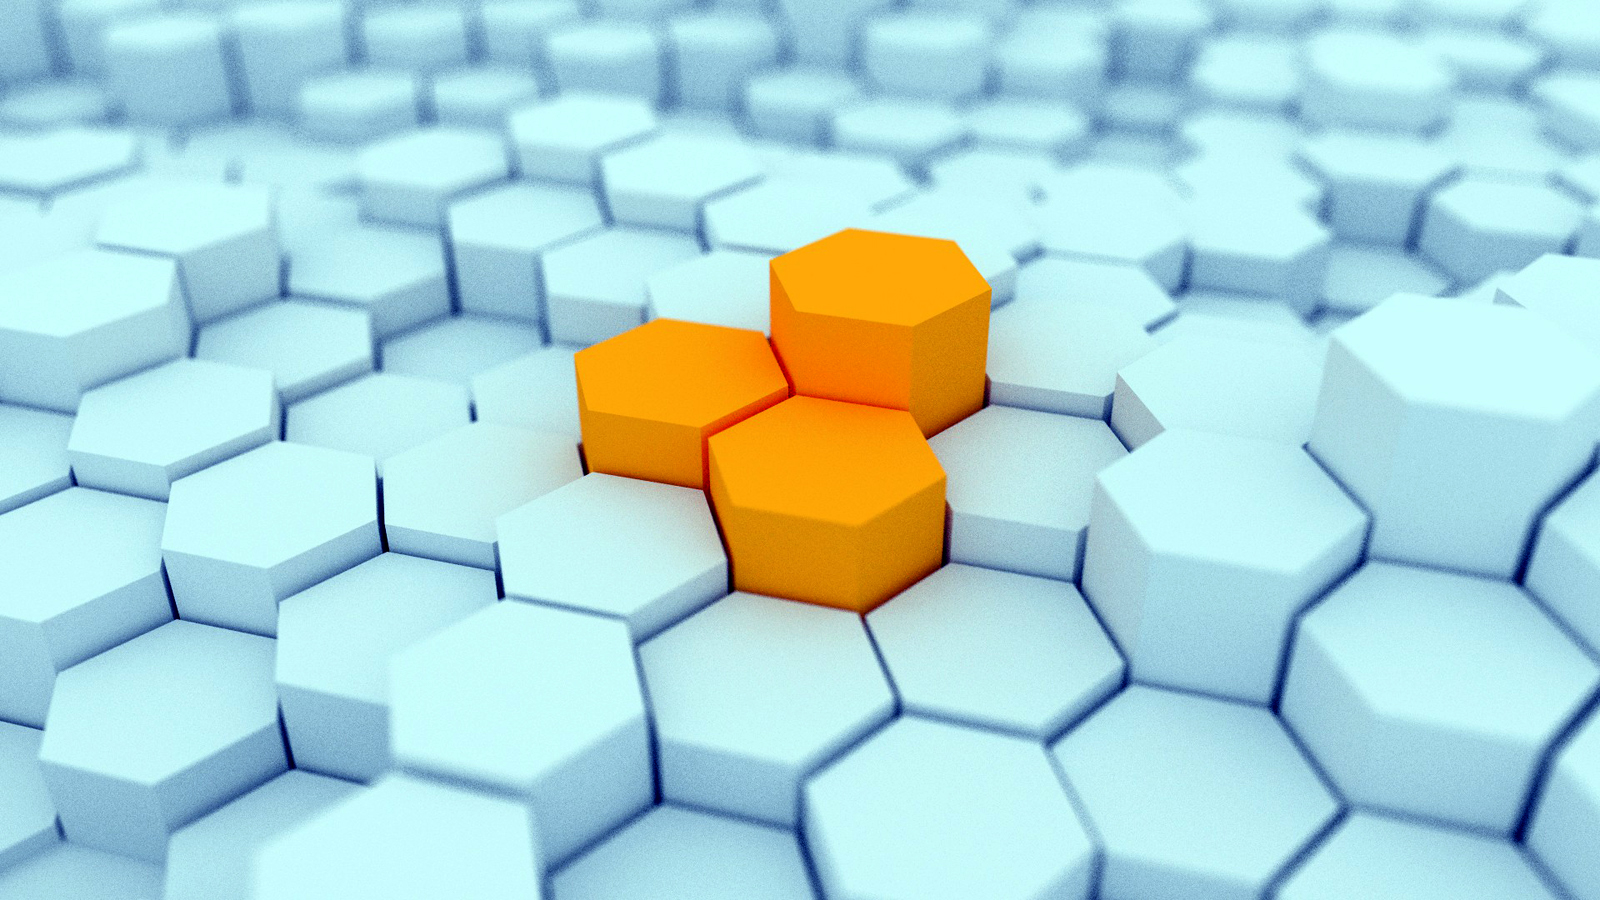 3d Hexagon Blocks Hd Wallpapers Desktop Wallpaper